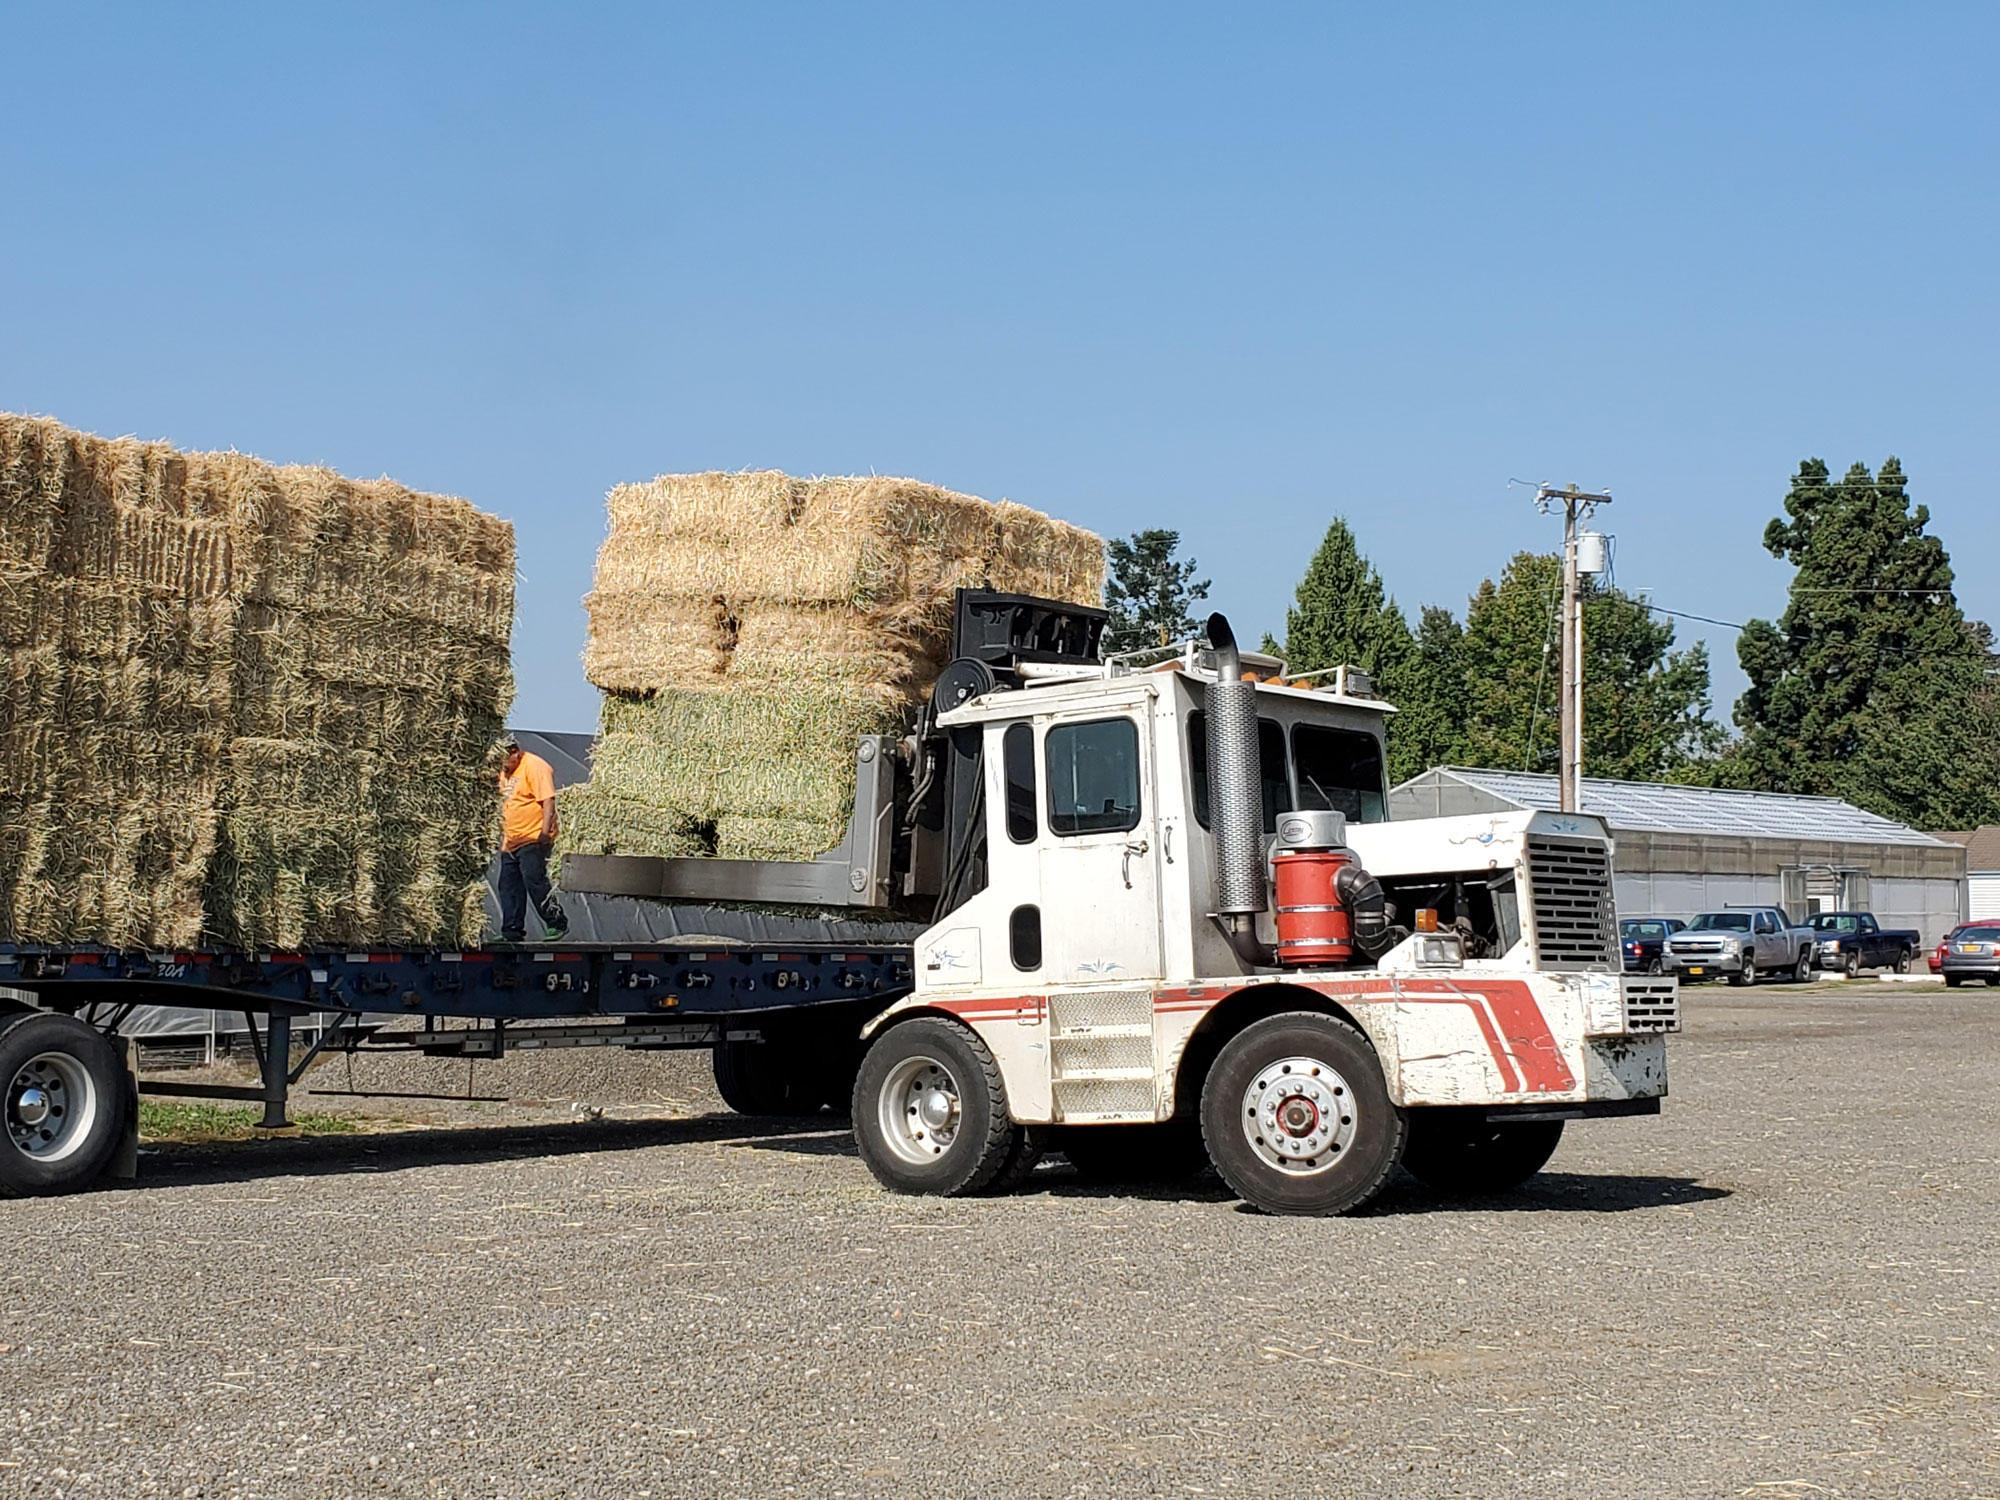 A semi truck carrying donated hay arrives at the North Willamette Research and Extension Center in Aurora.